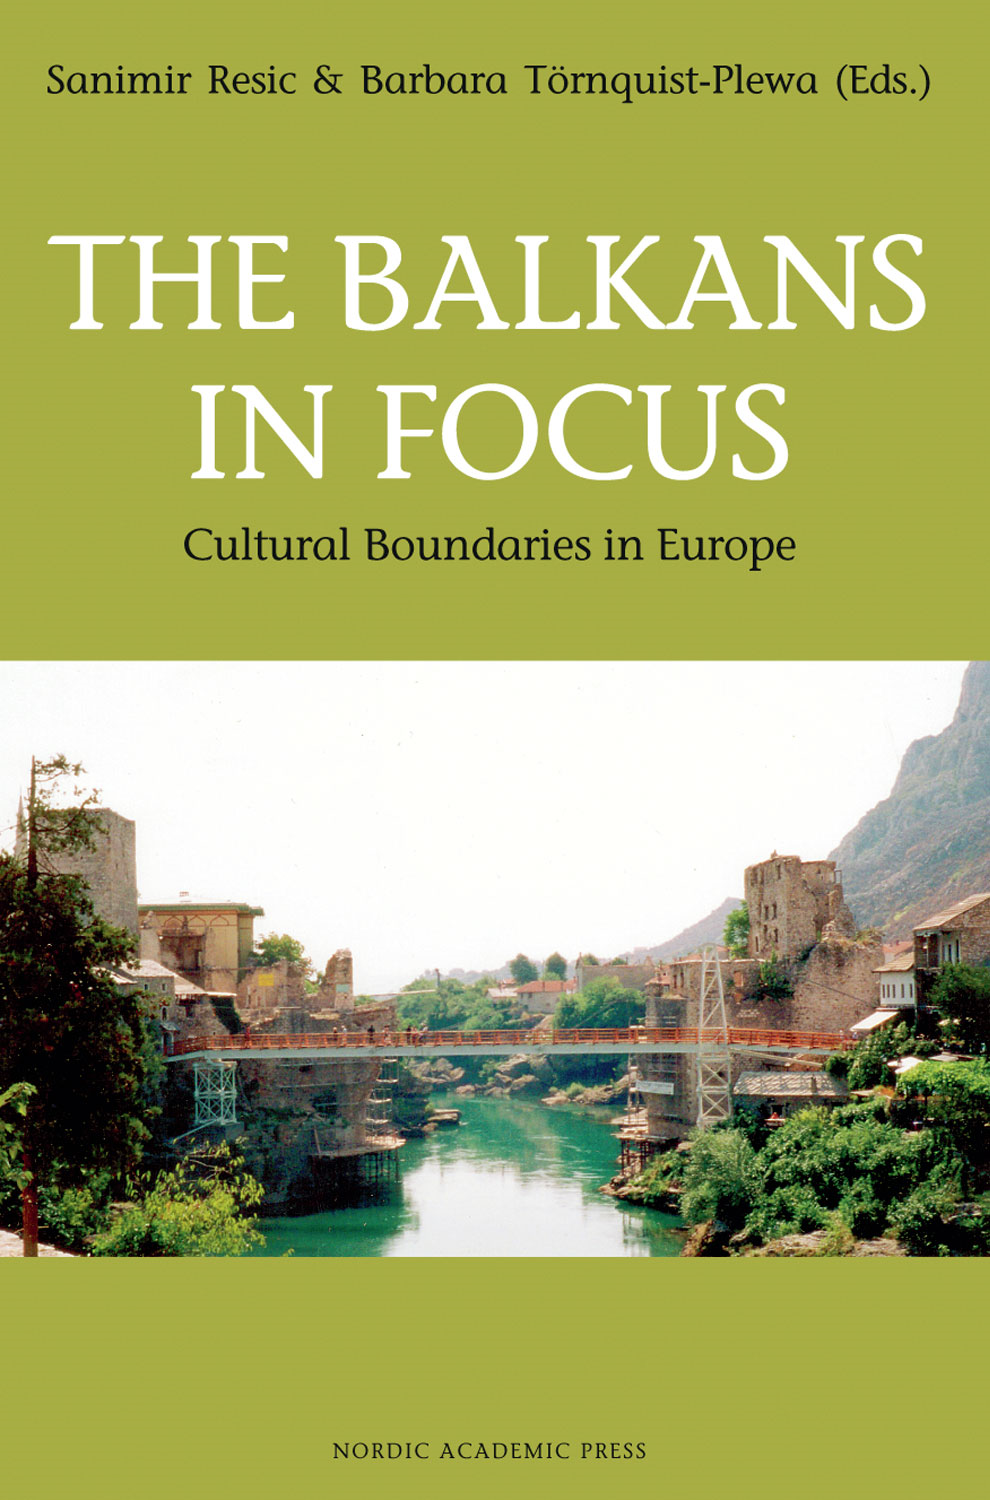 The Balkans in Focus: Cultural Boundaries in Europe By: Barbara Tornquist-Plewa